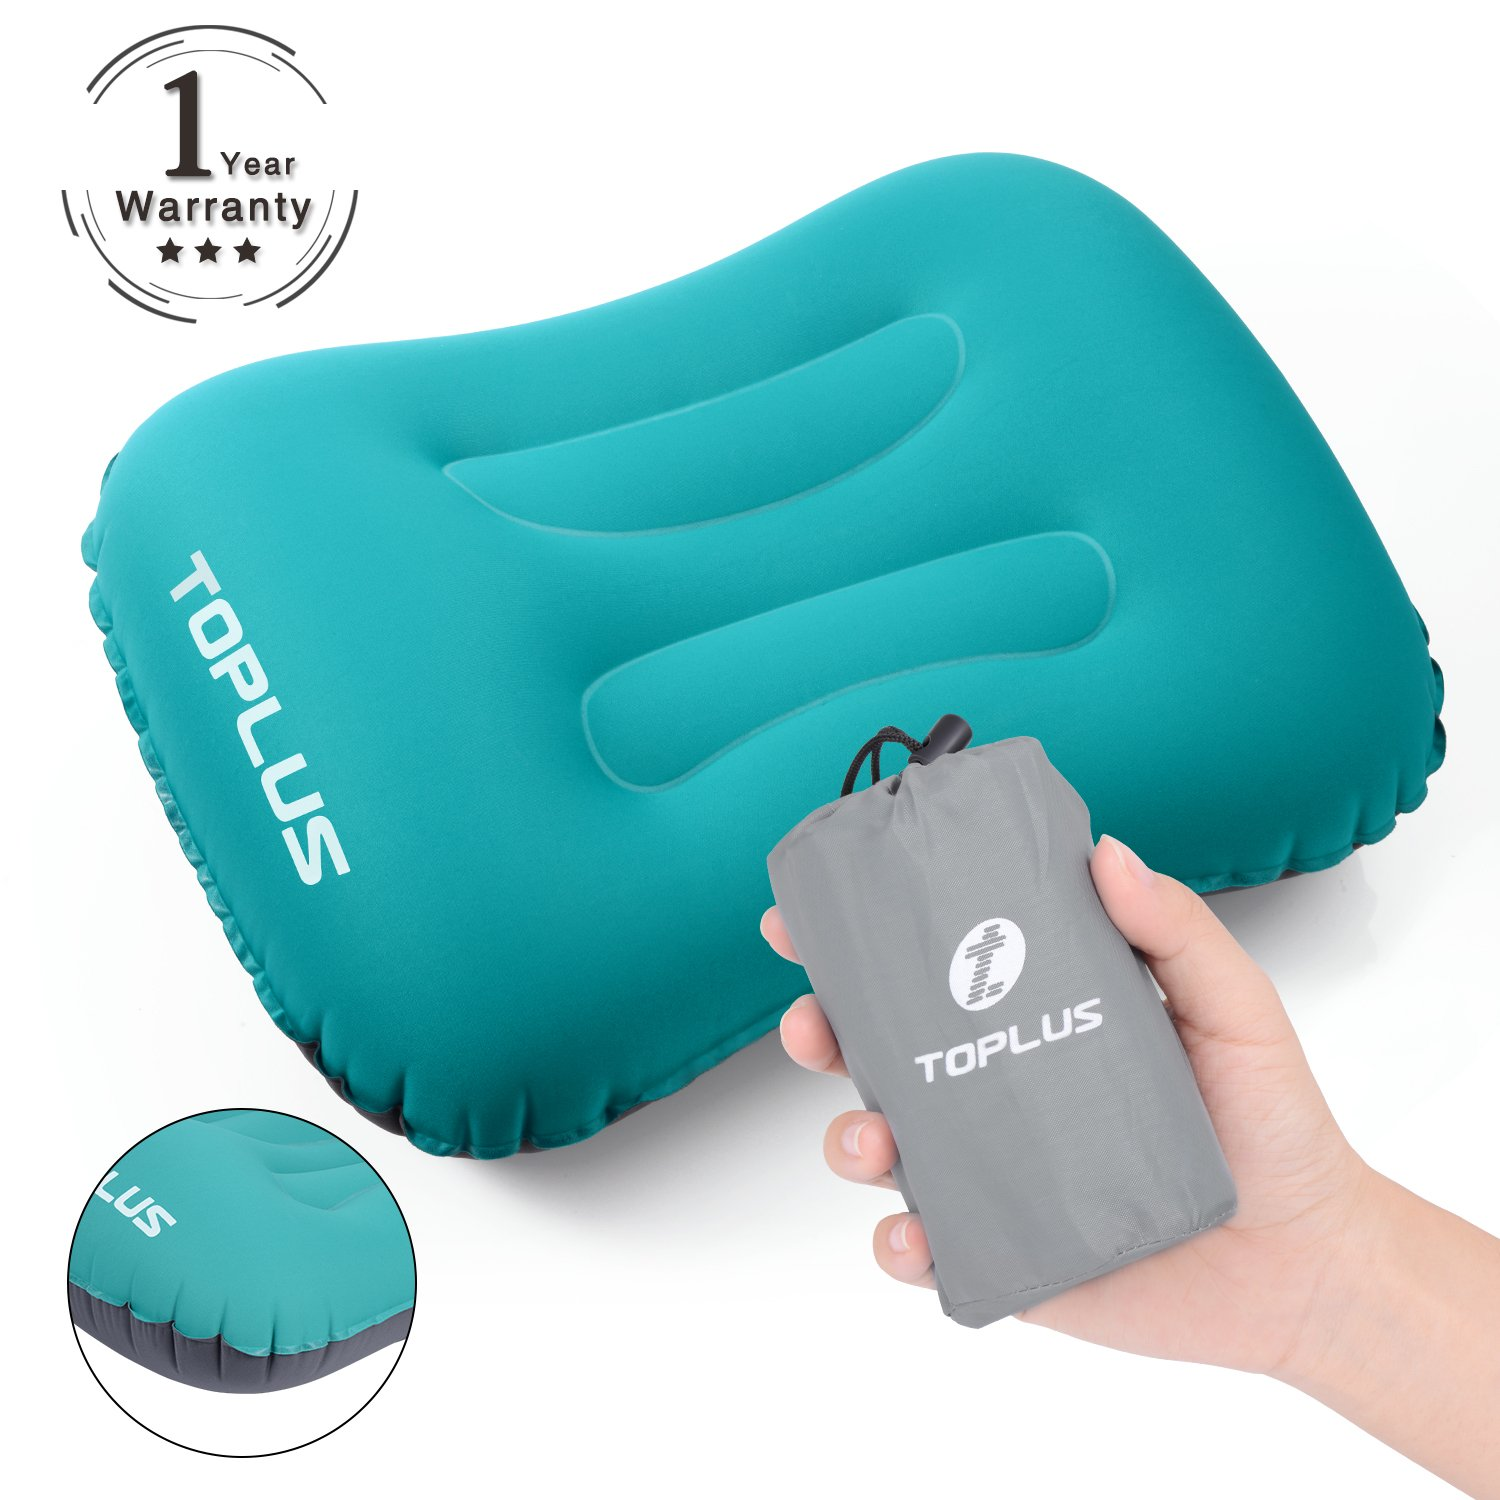 ec8889ceaba TOPLUS Inflatable Camping Pillow Ultralight Air Travel Pillow for Camping  and Hiking